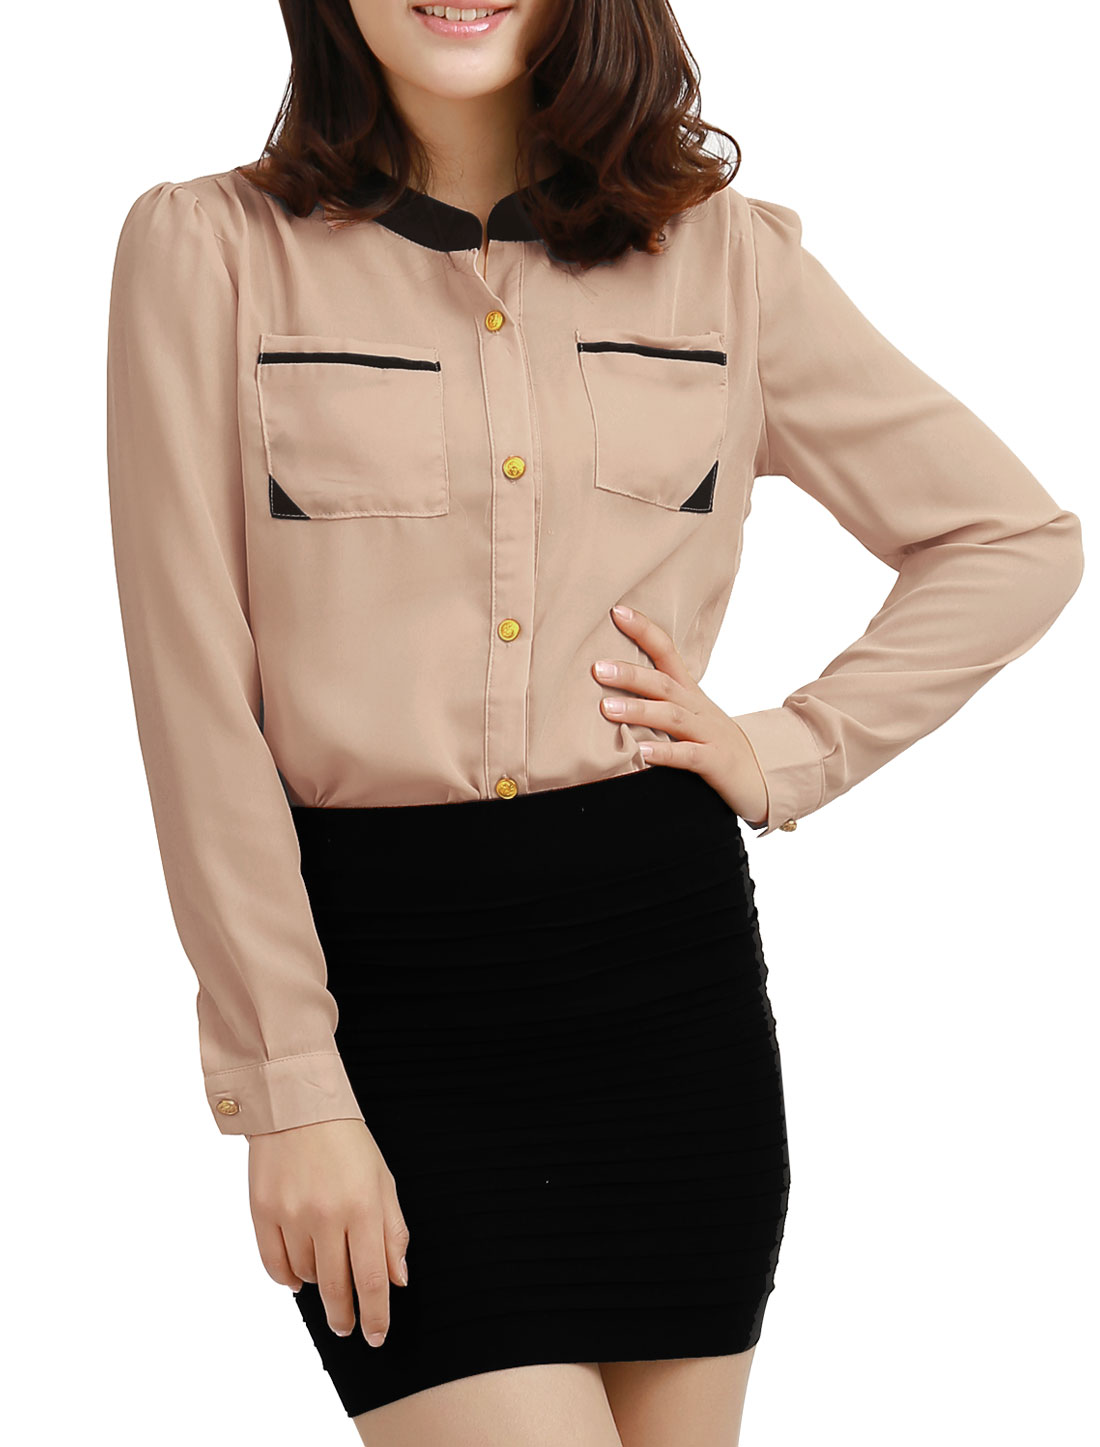 Women Stand Collar Long Sleeves High Low Hem Dual Pockets Chiffon Shirt Pink M